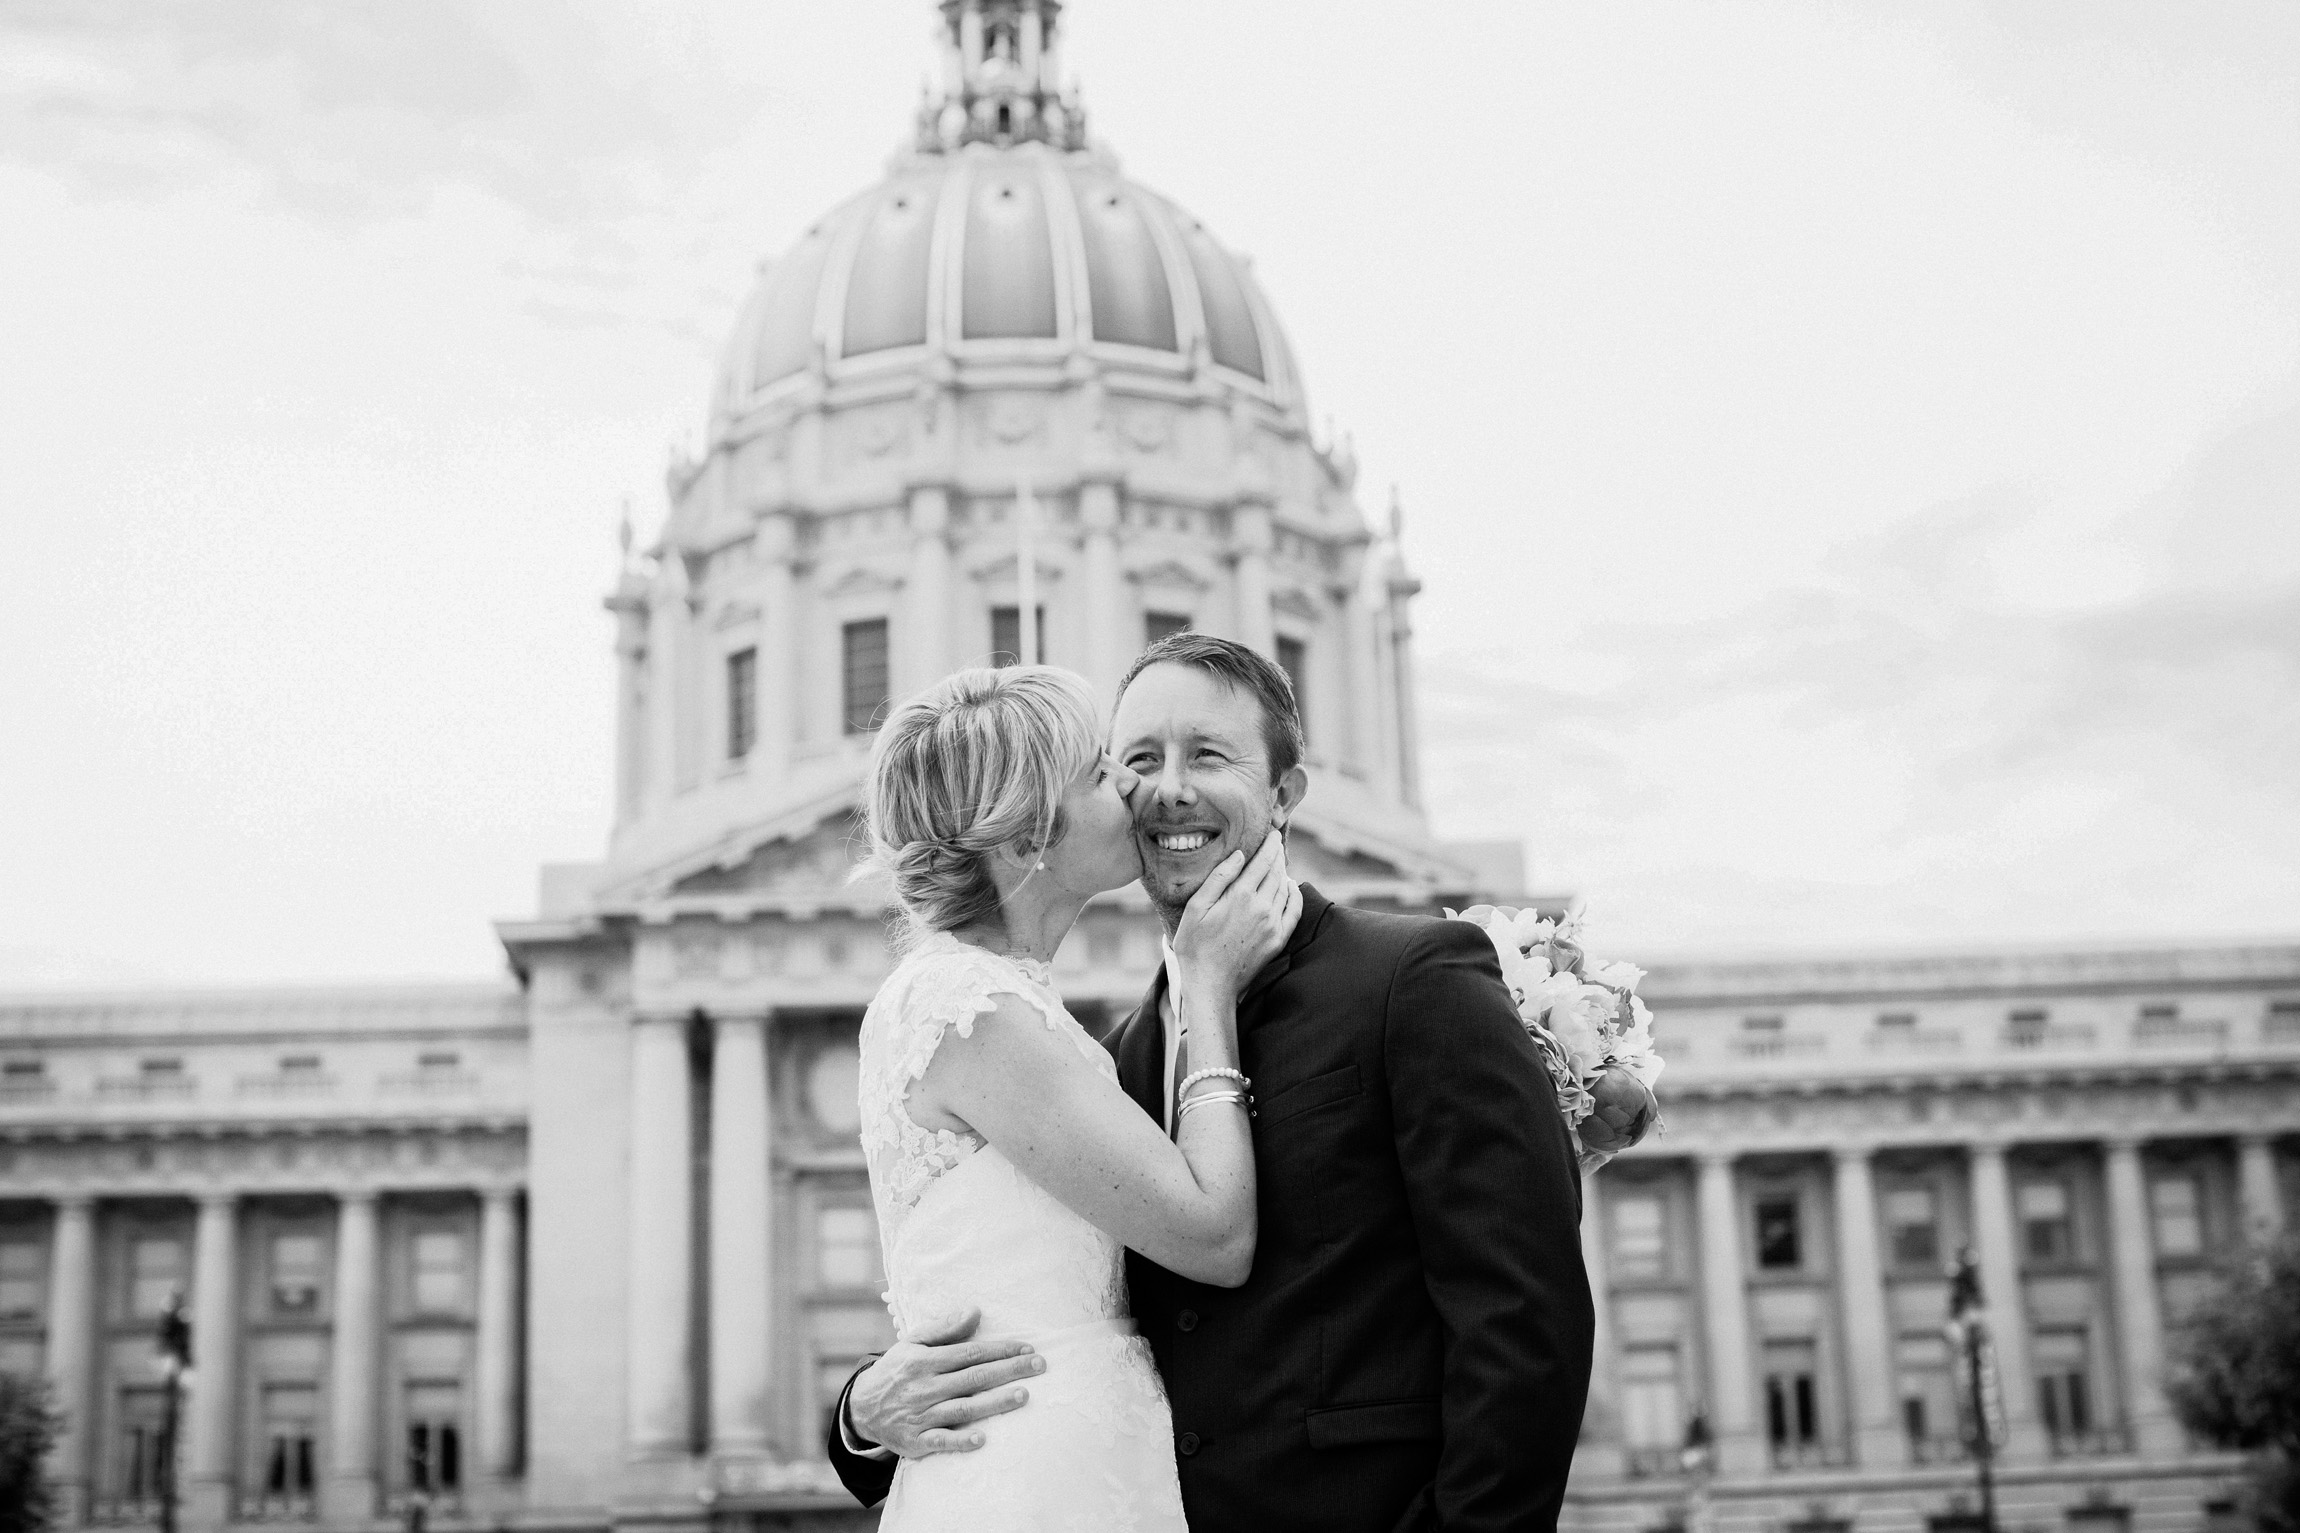 039_janaeshieldsphotography_sanfrancisco_cityhall_weddings.jpg